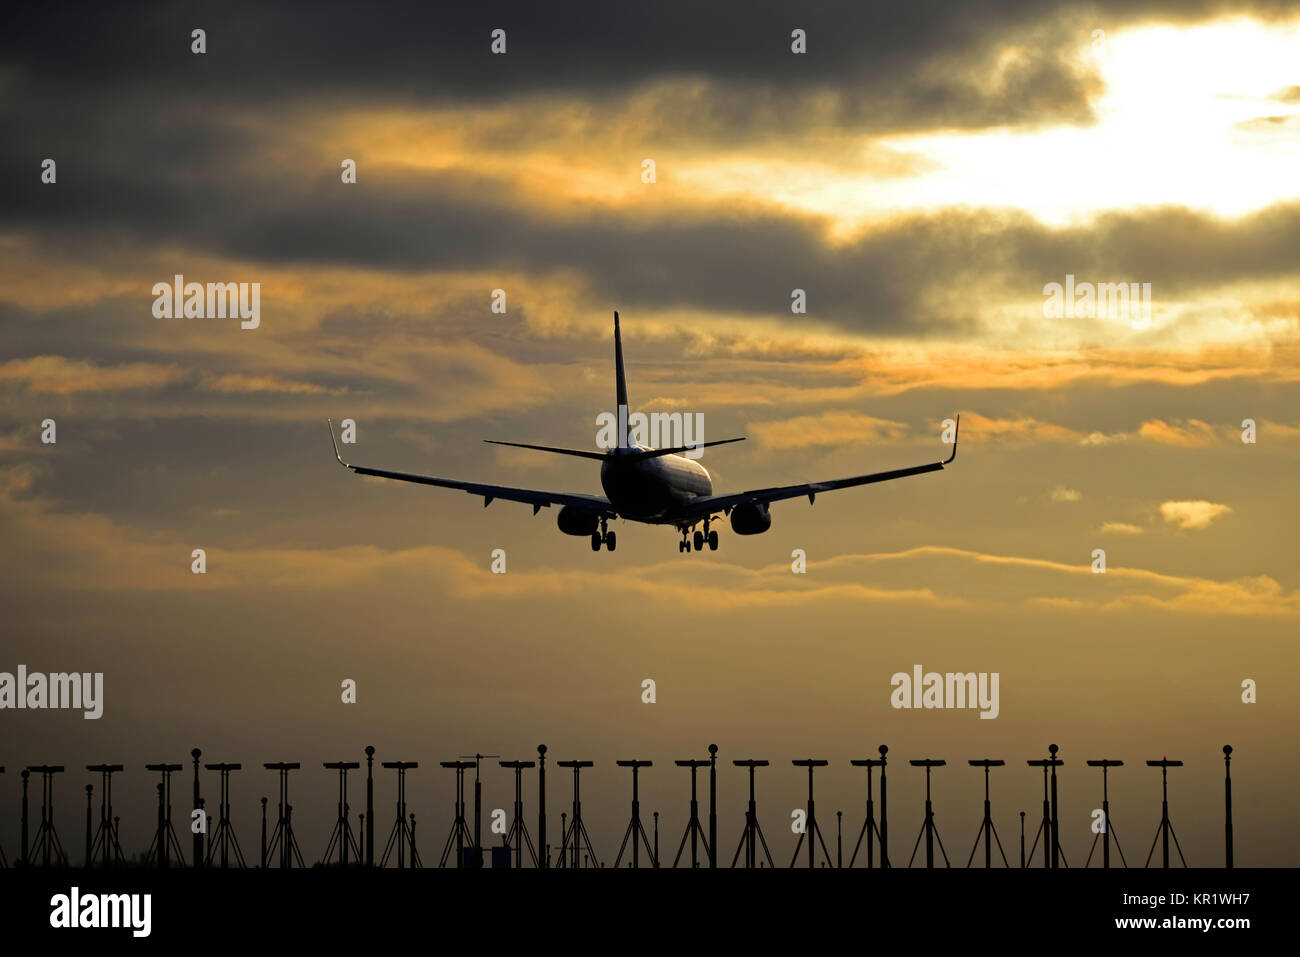 Ryanair Boeing 737 airliner jet plane landing at London Stansted Airport at sunset. Dusk. Evening. Space for copy - Stock Image